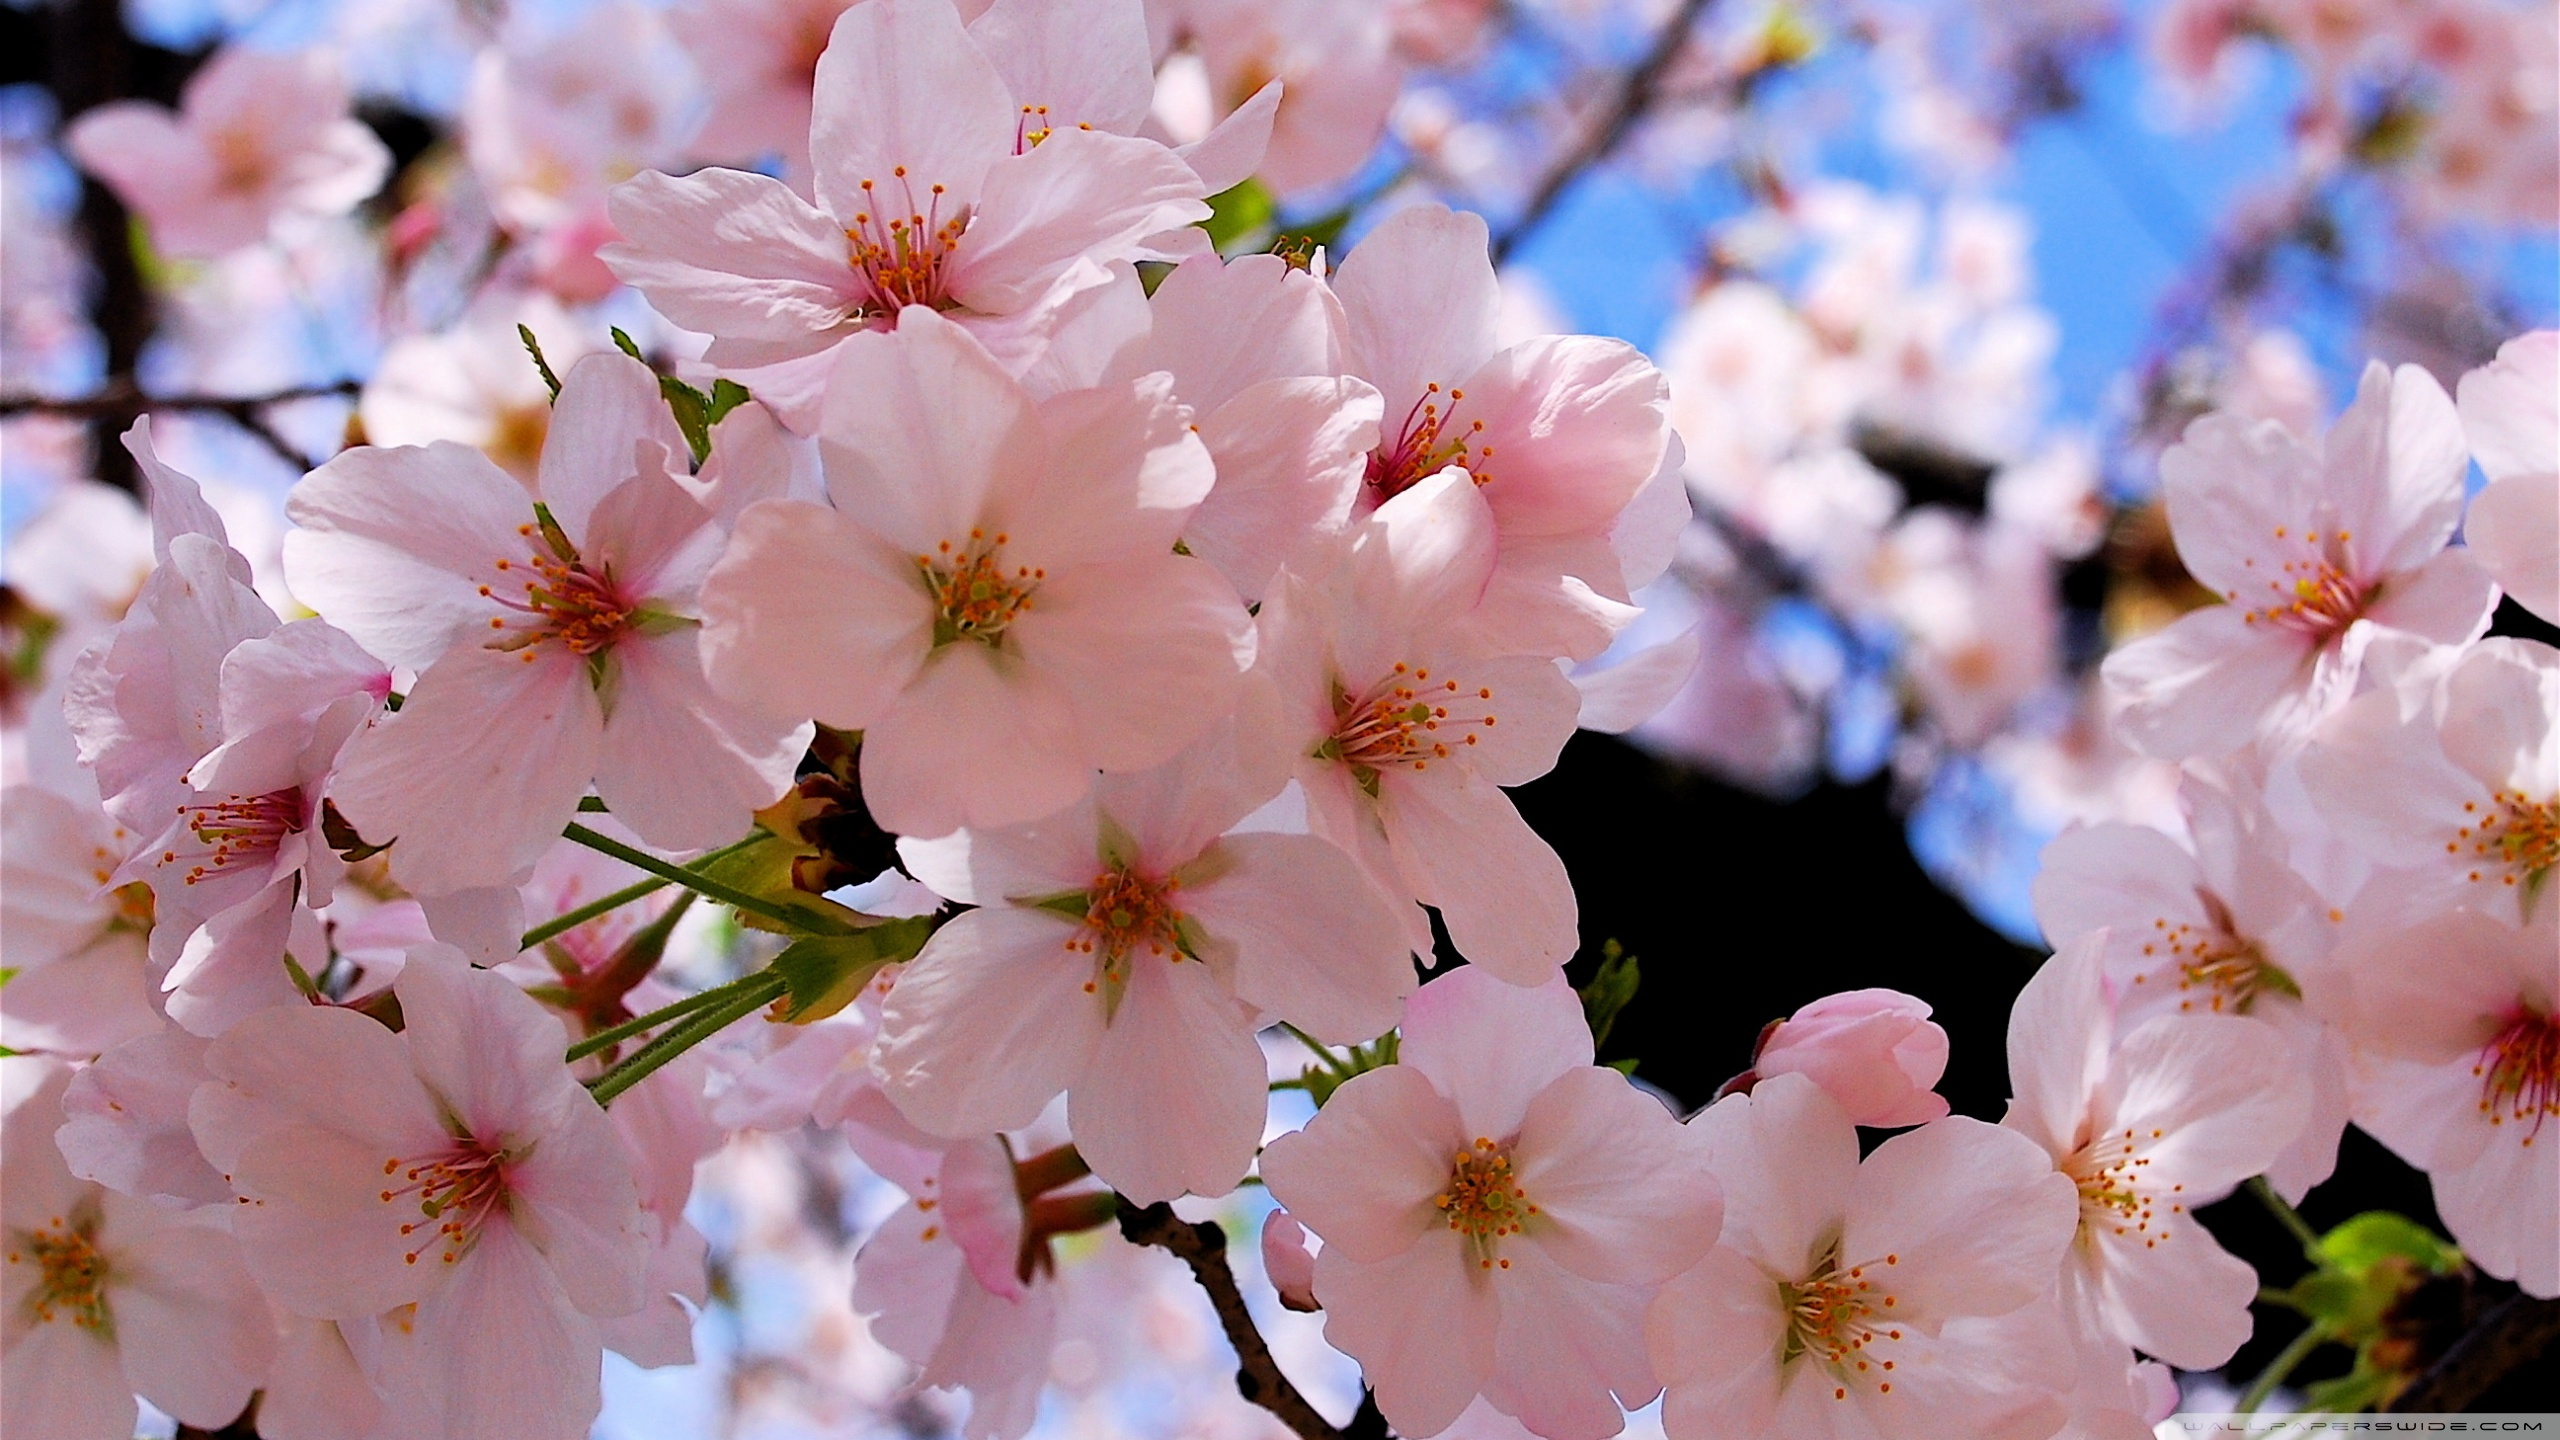 spring_pink_blossoms-wallpaper-2560x1440.jpg